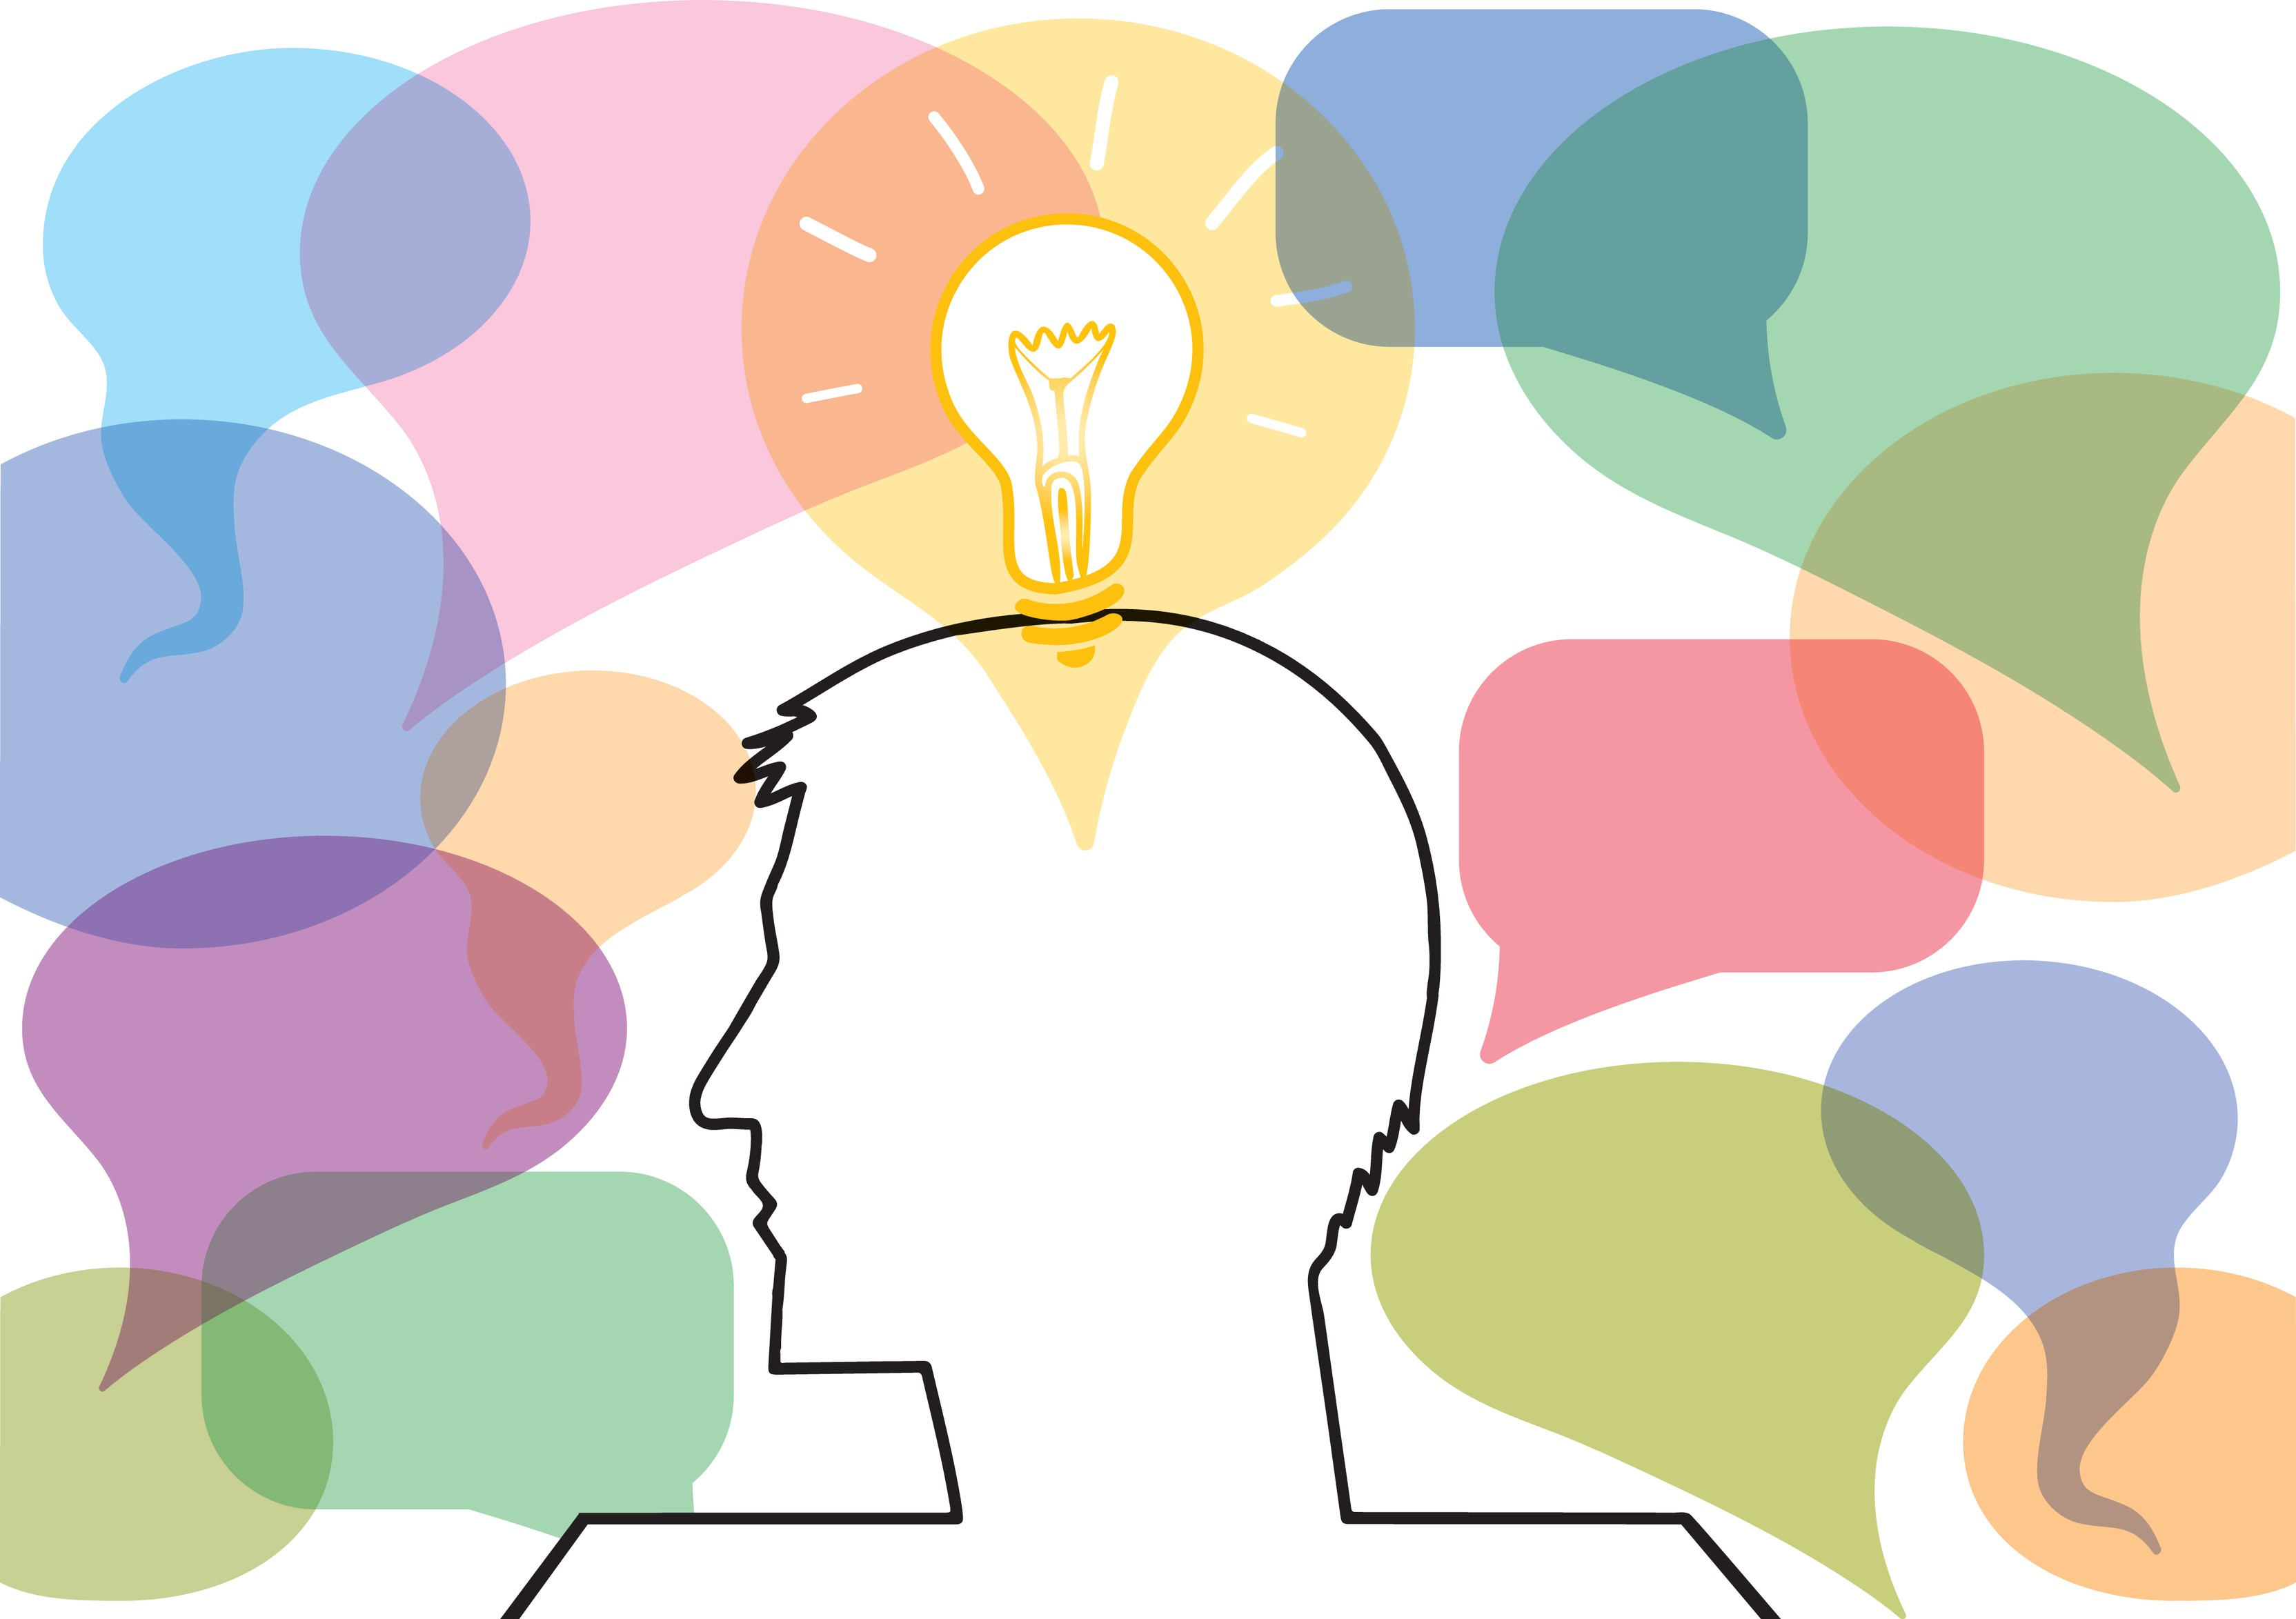 Image showing the outline of a person's face having a lightbulb moment. The face is surrounded by speech bubbles to indicate different perspectives being shared.